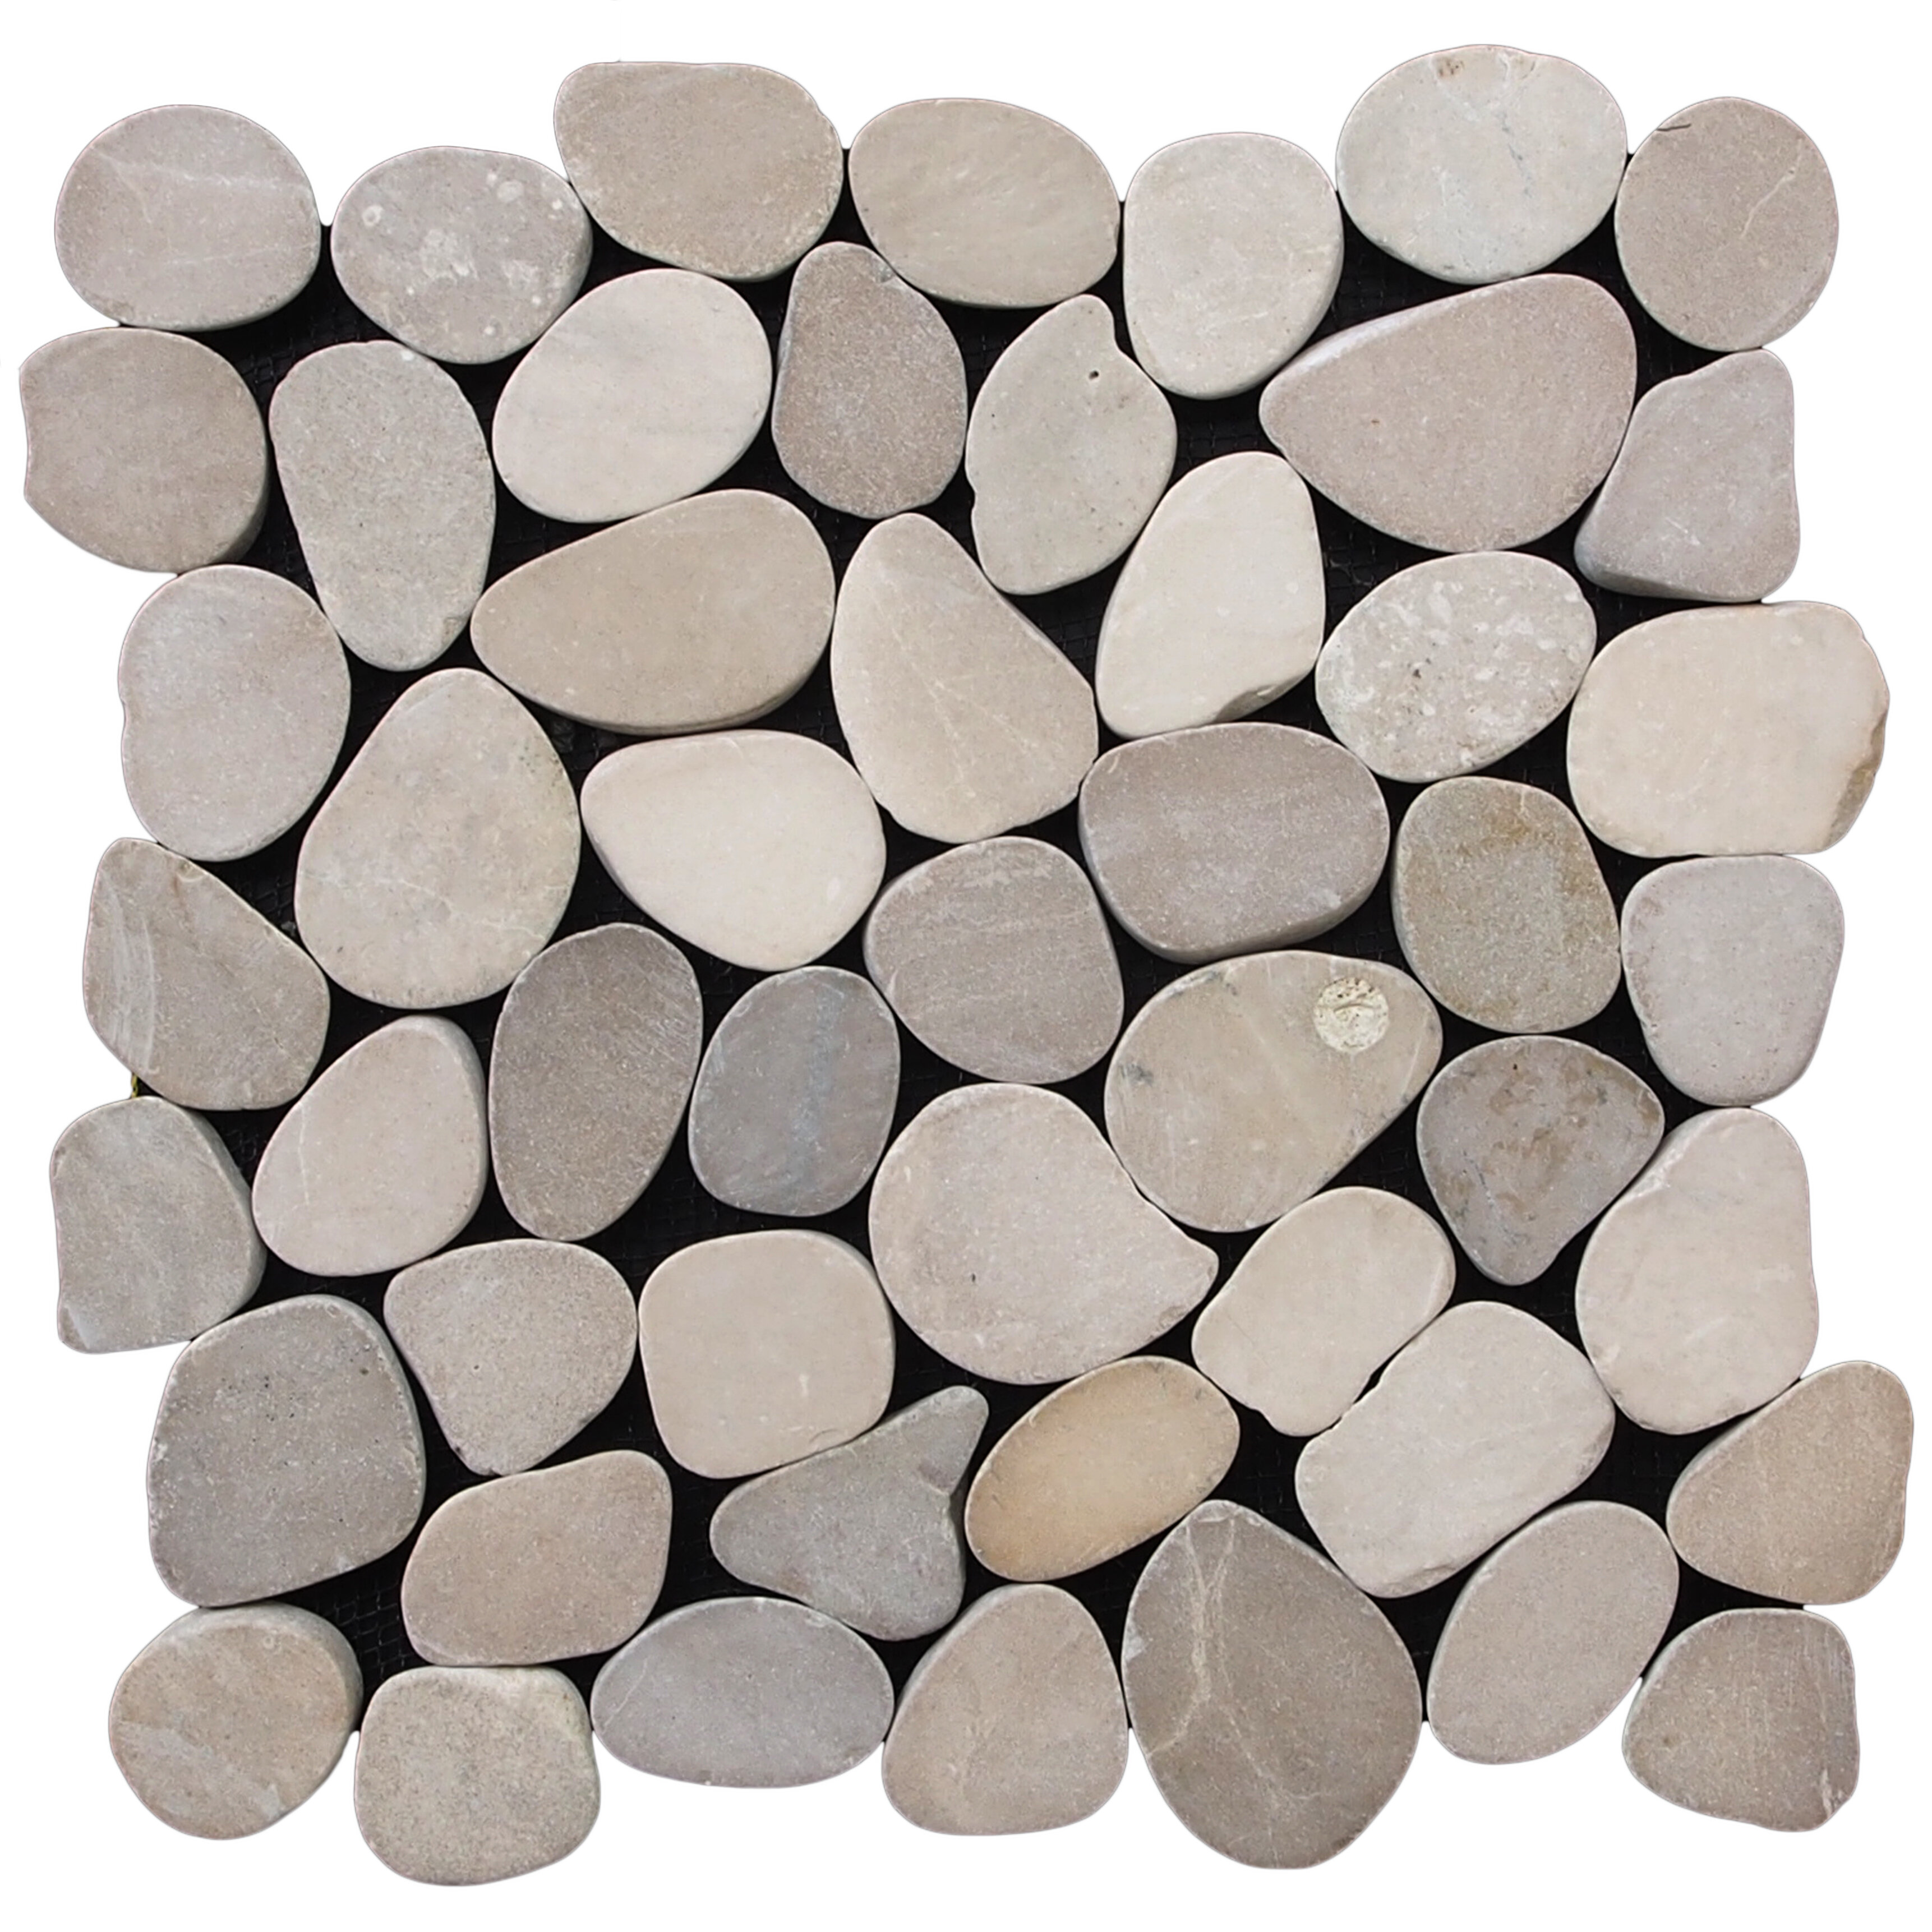 Pebble Tile Sliced Random Sized Natural Stone In Tan Reviews Wayfair